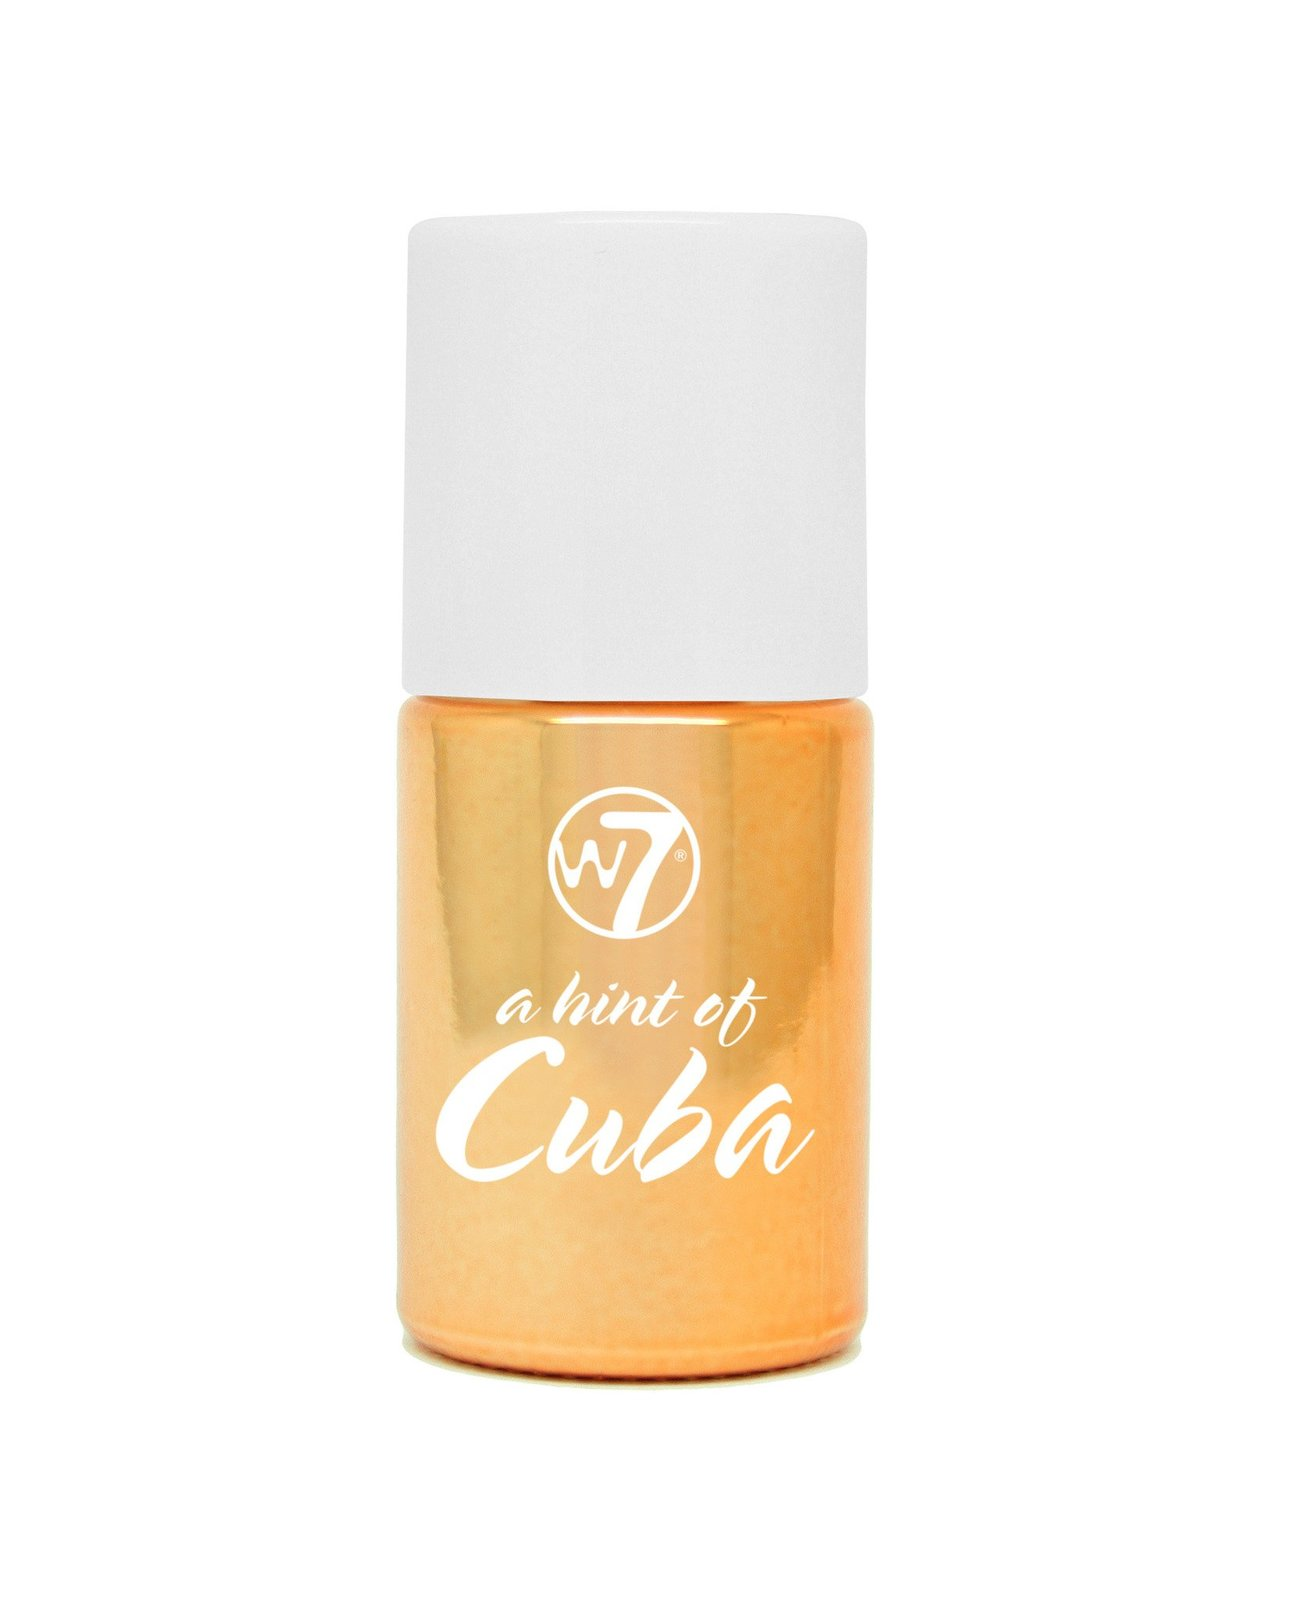 W7 Lip Stain Hint of Paradise (A Hint of Cuba) image